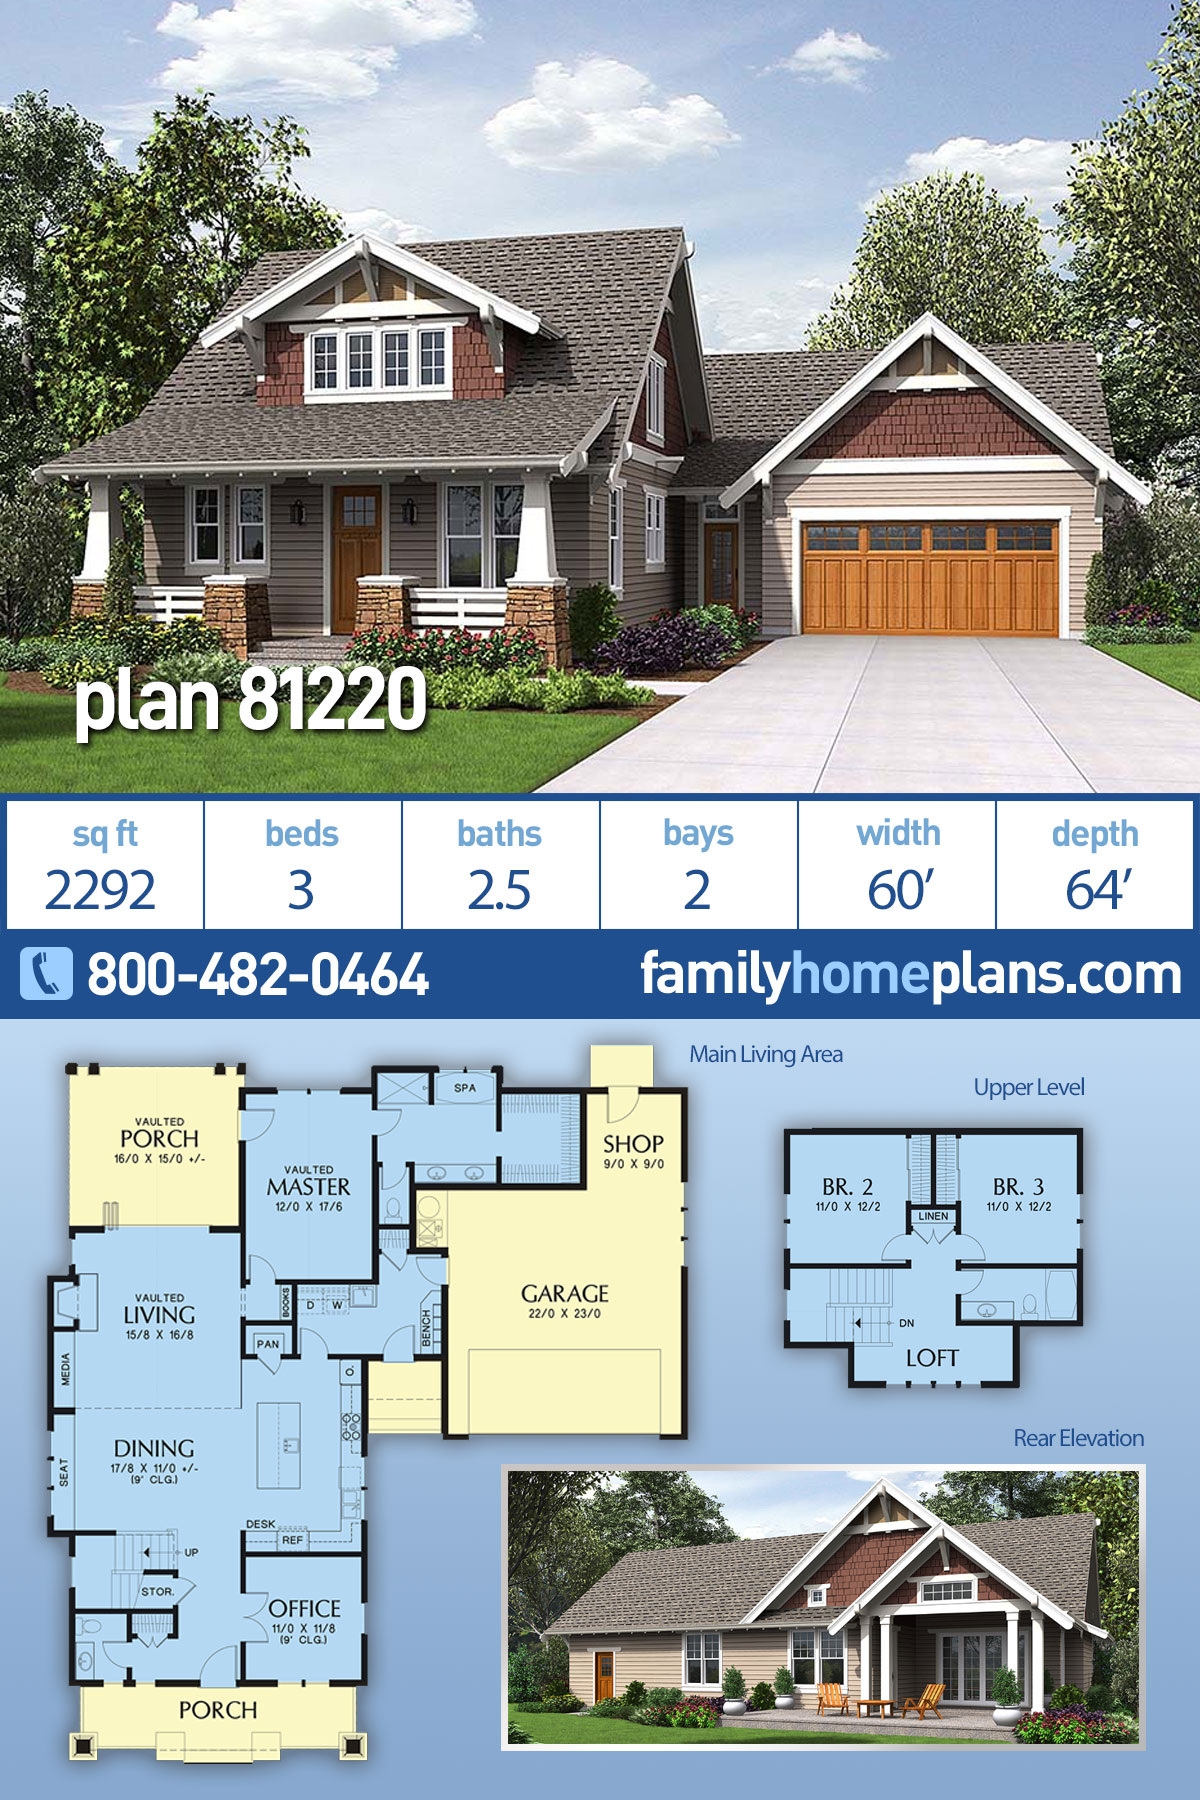 Bungalow, Craftsman, Traditional House Plan 81220 with 3 Beds, 3 Baths, 2 Car Garage